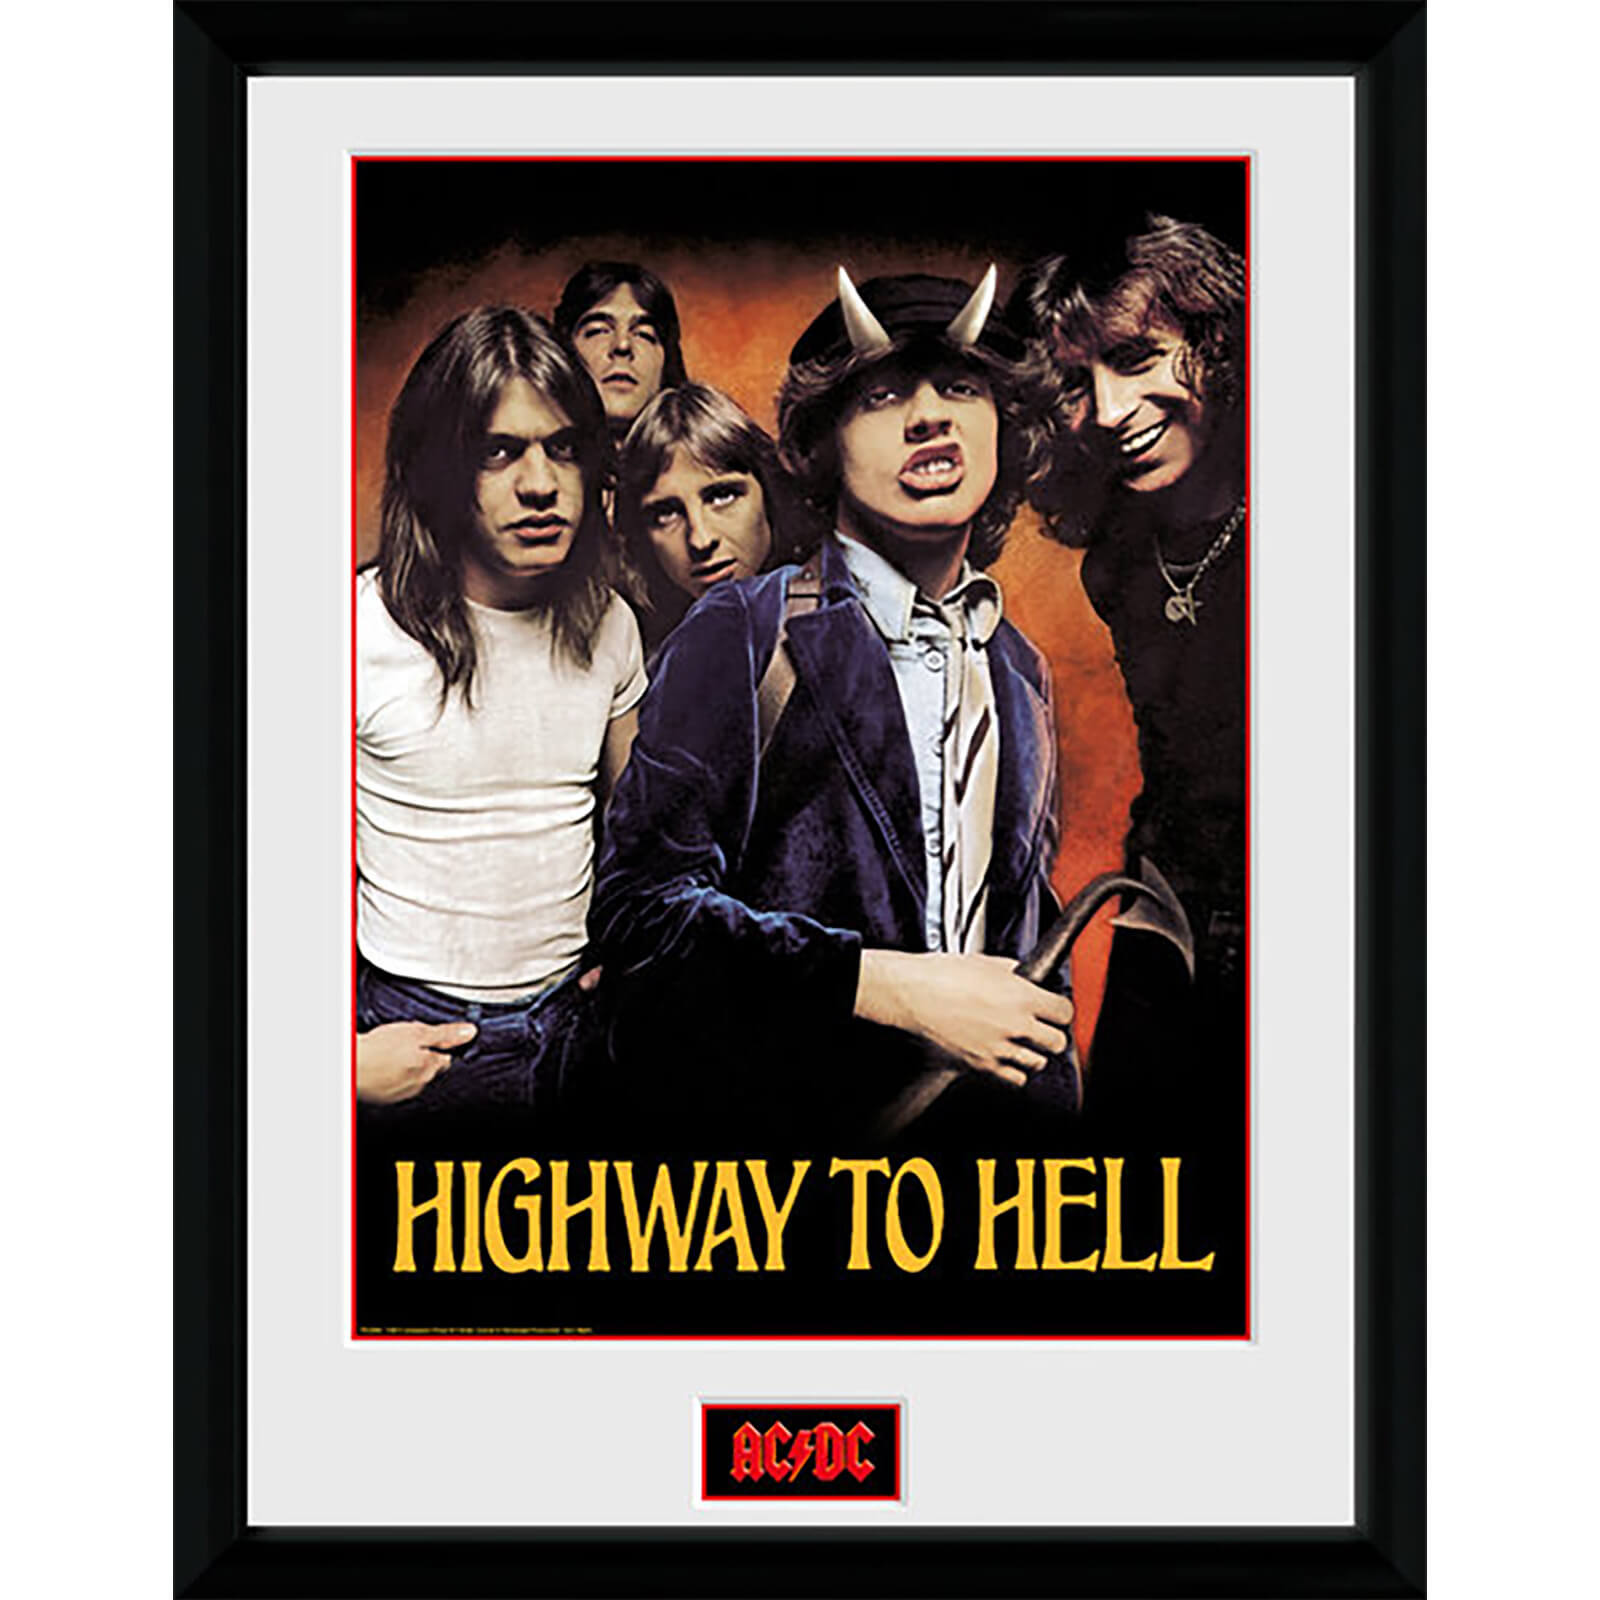 AC/DC Highway To Hell - 16 x 12 Inches Framed Photograph